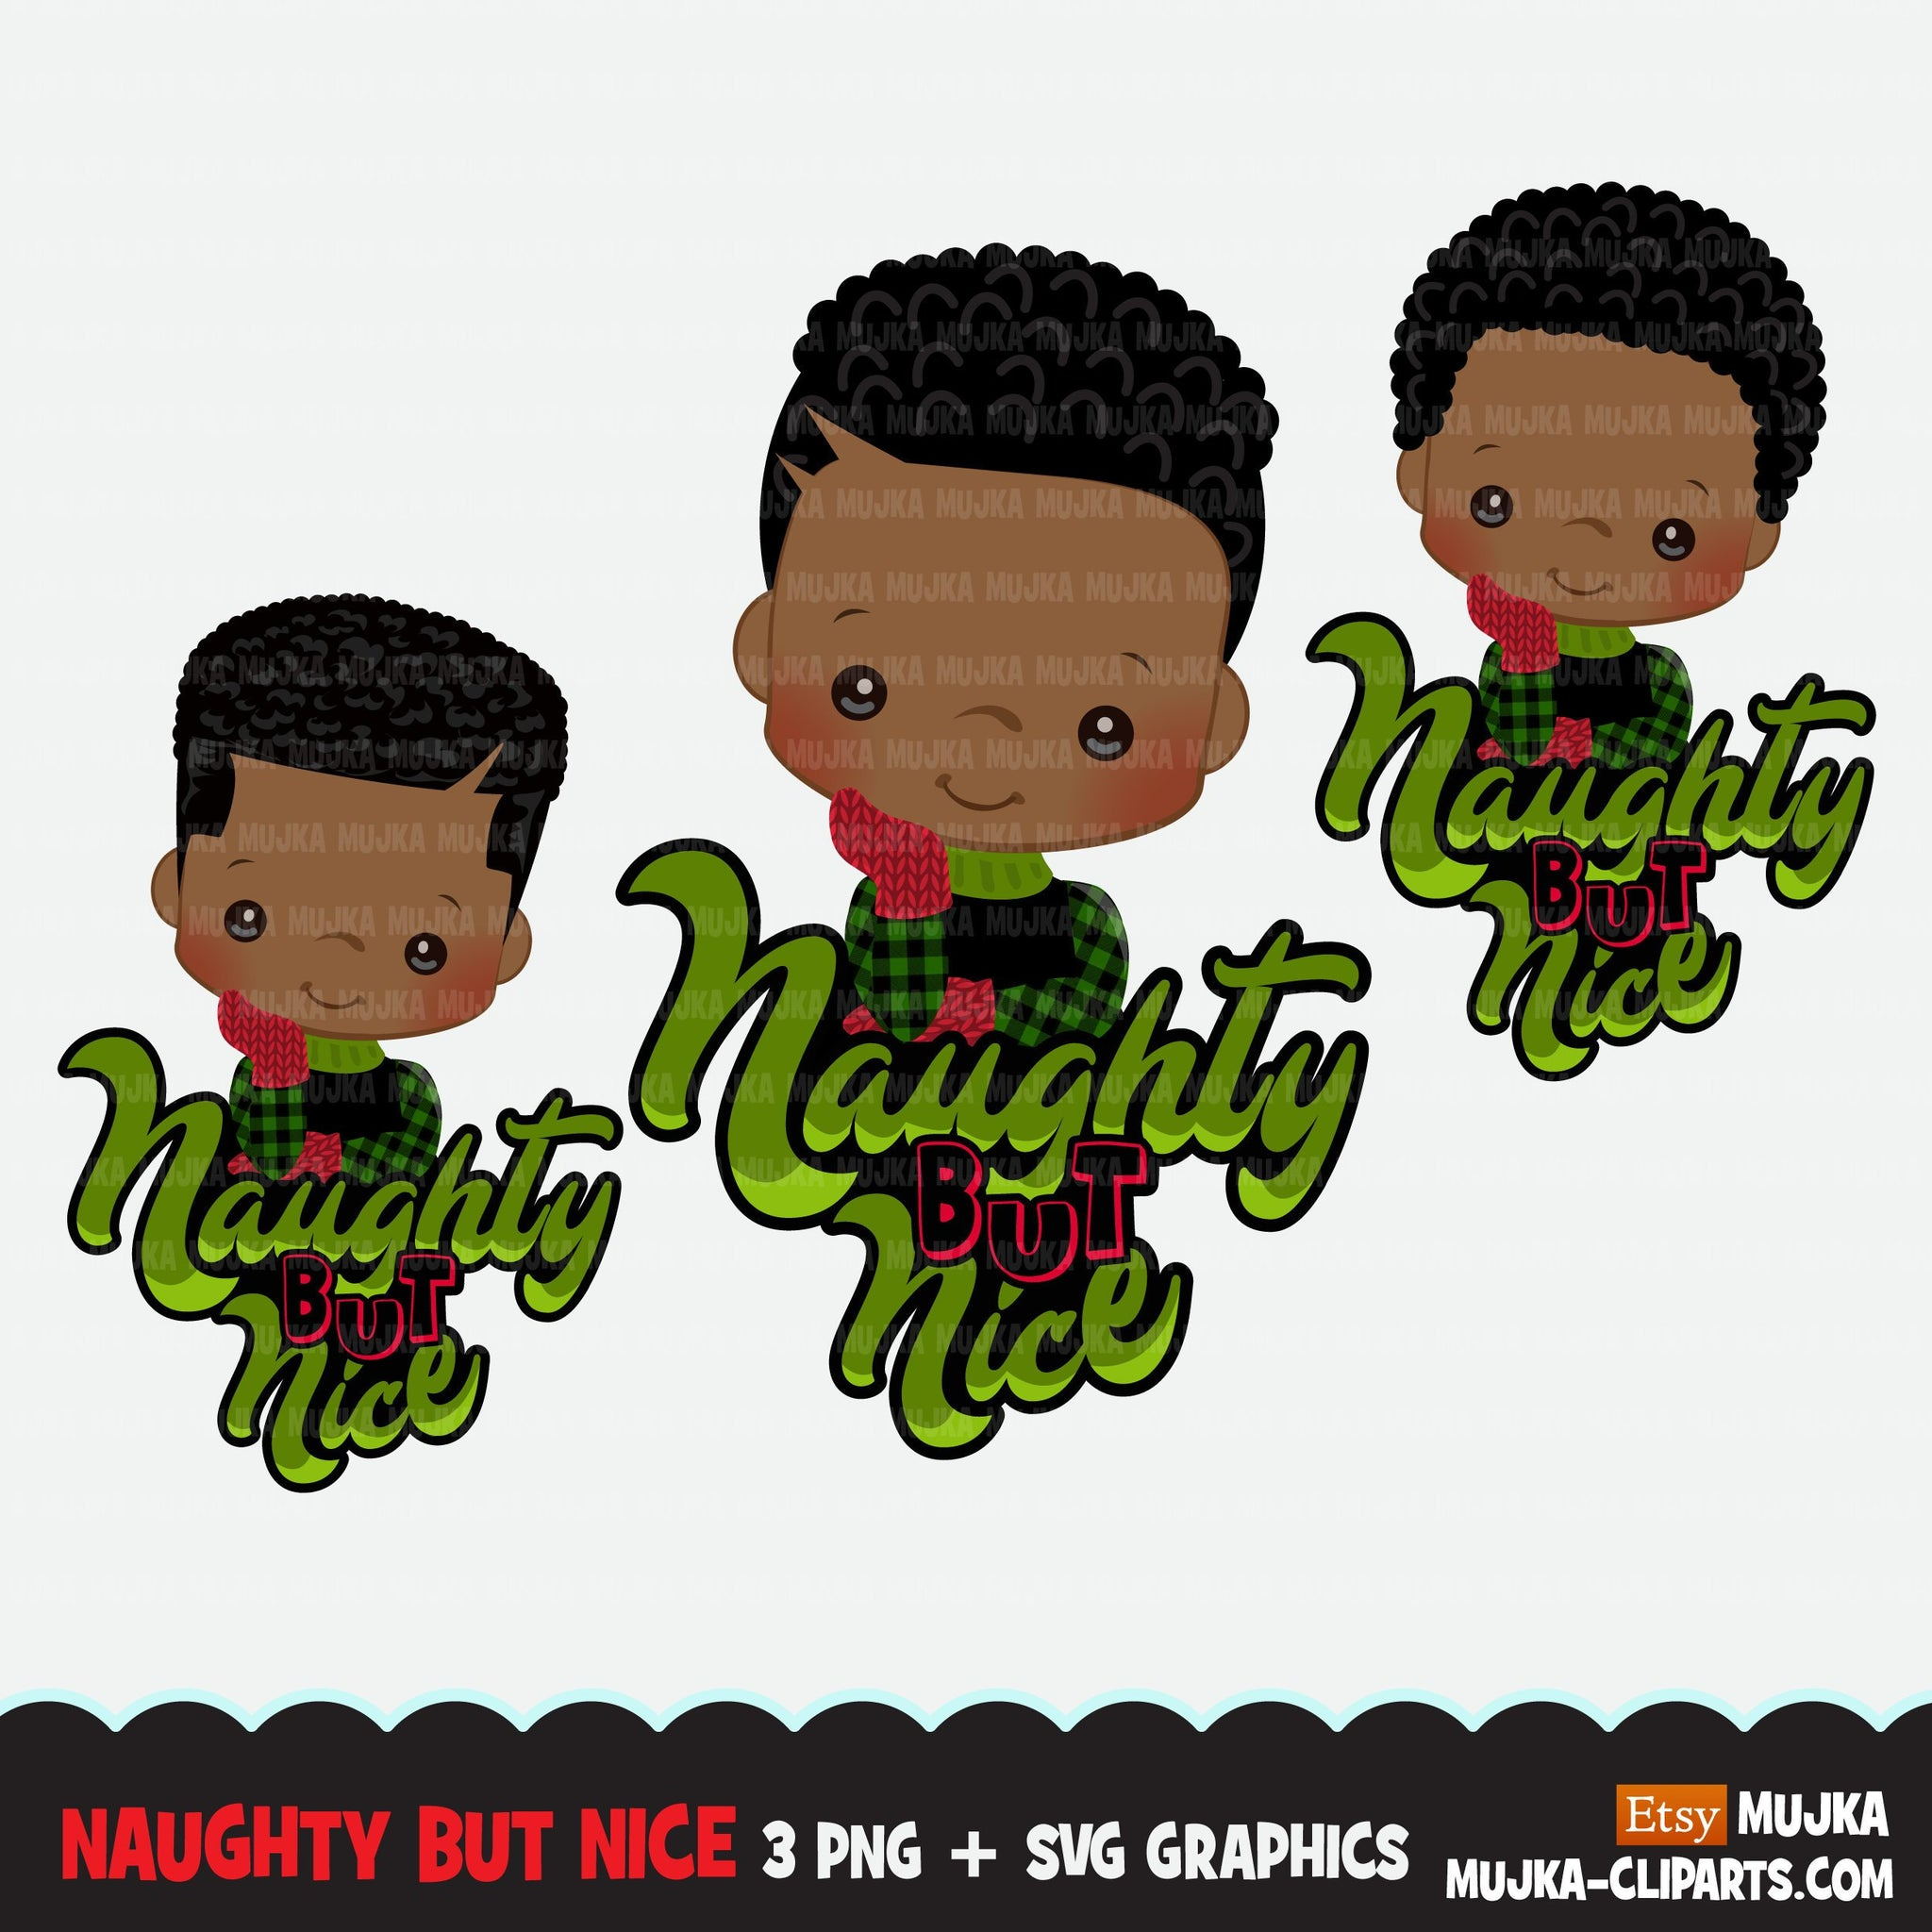 Christmas SVG PNG digital, Naughty but Nice HTV sublimation image transfer clipart, t-shirt graphics, Afro Plaid little boy characters